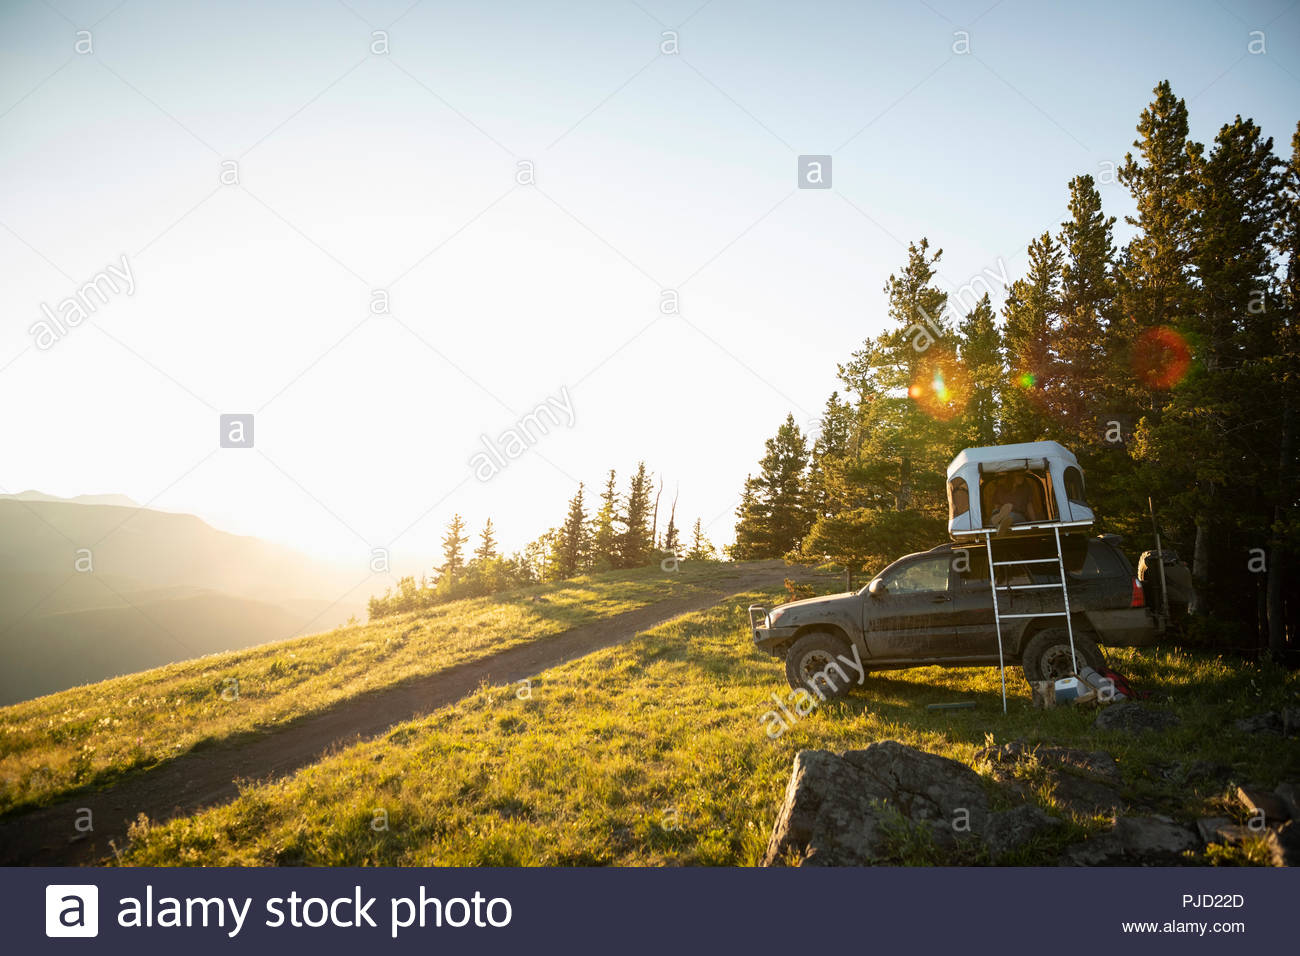 SUV with rooftop tent on sunny, idyllic mountain hilltop, Alberta, Canada - Stock Image